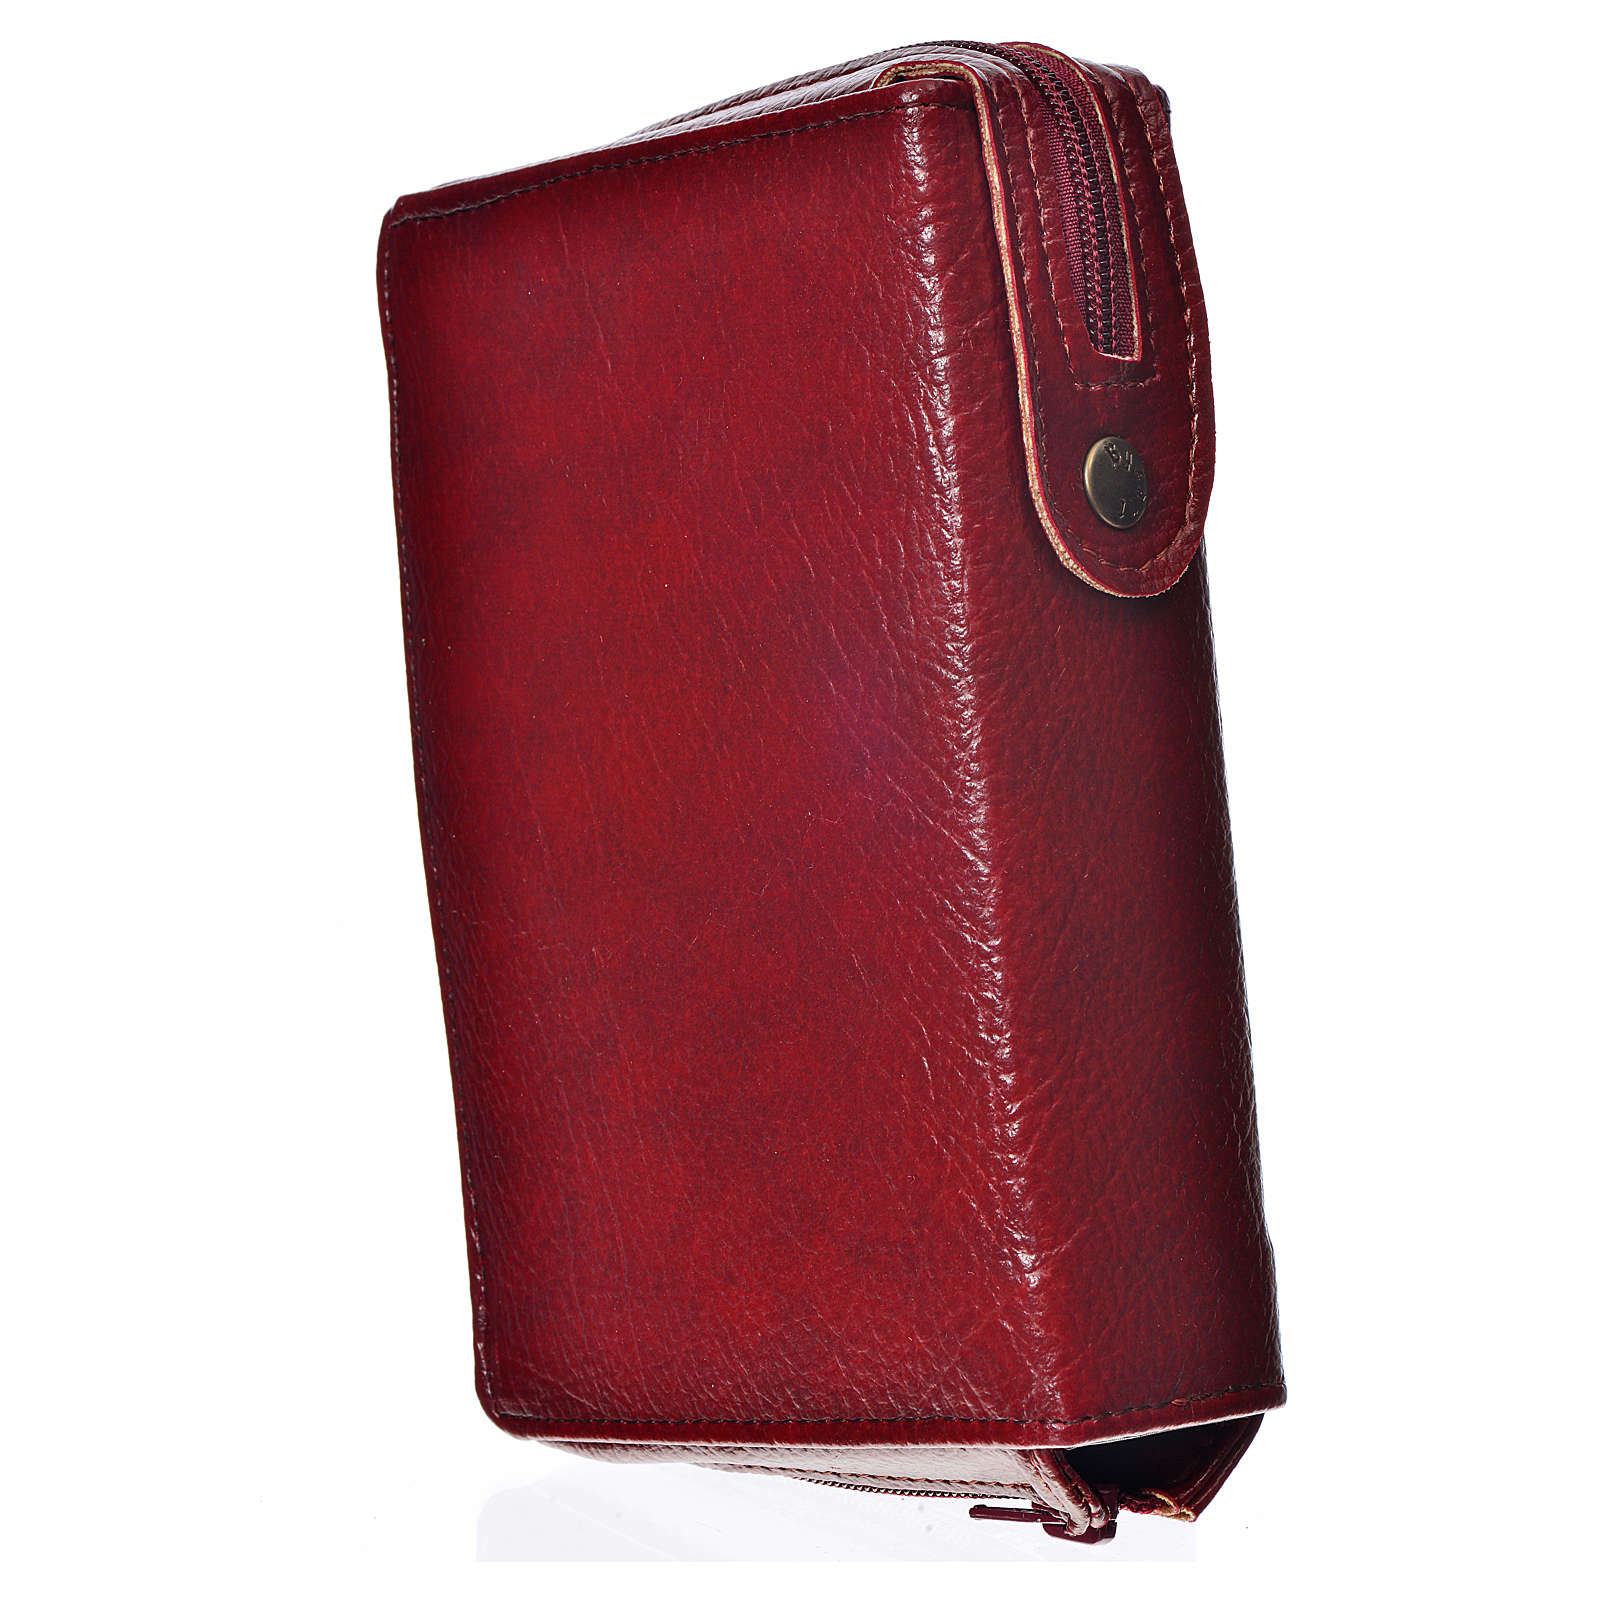 Catholic Bible Anglicized cover, burgundy bonded leather with image of the Divine Mercy 4